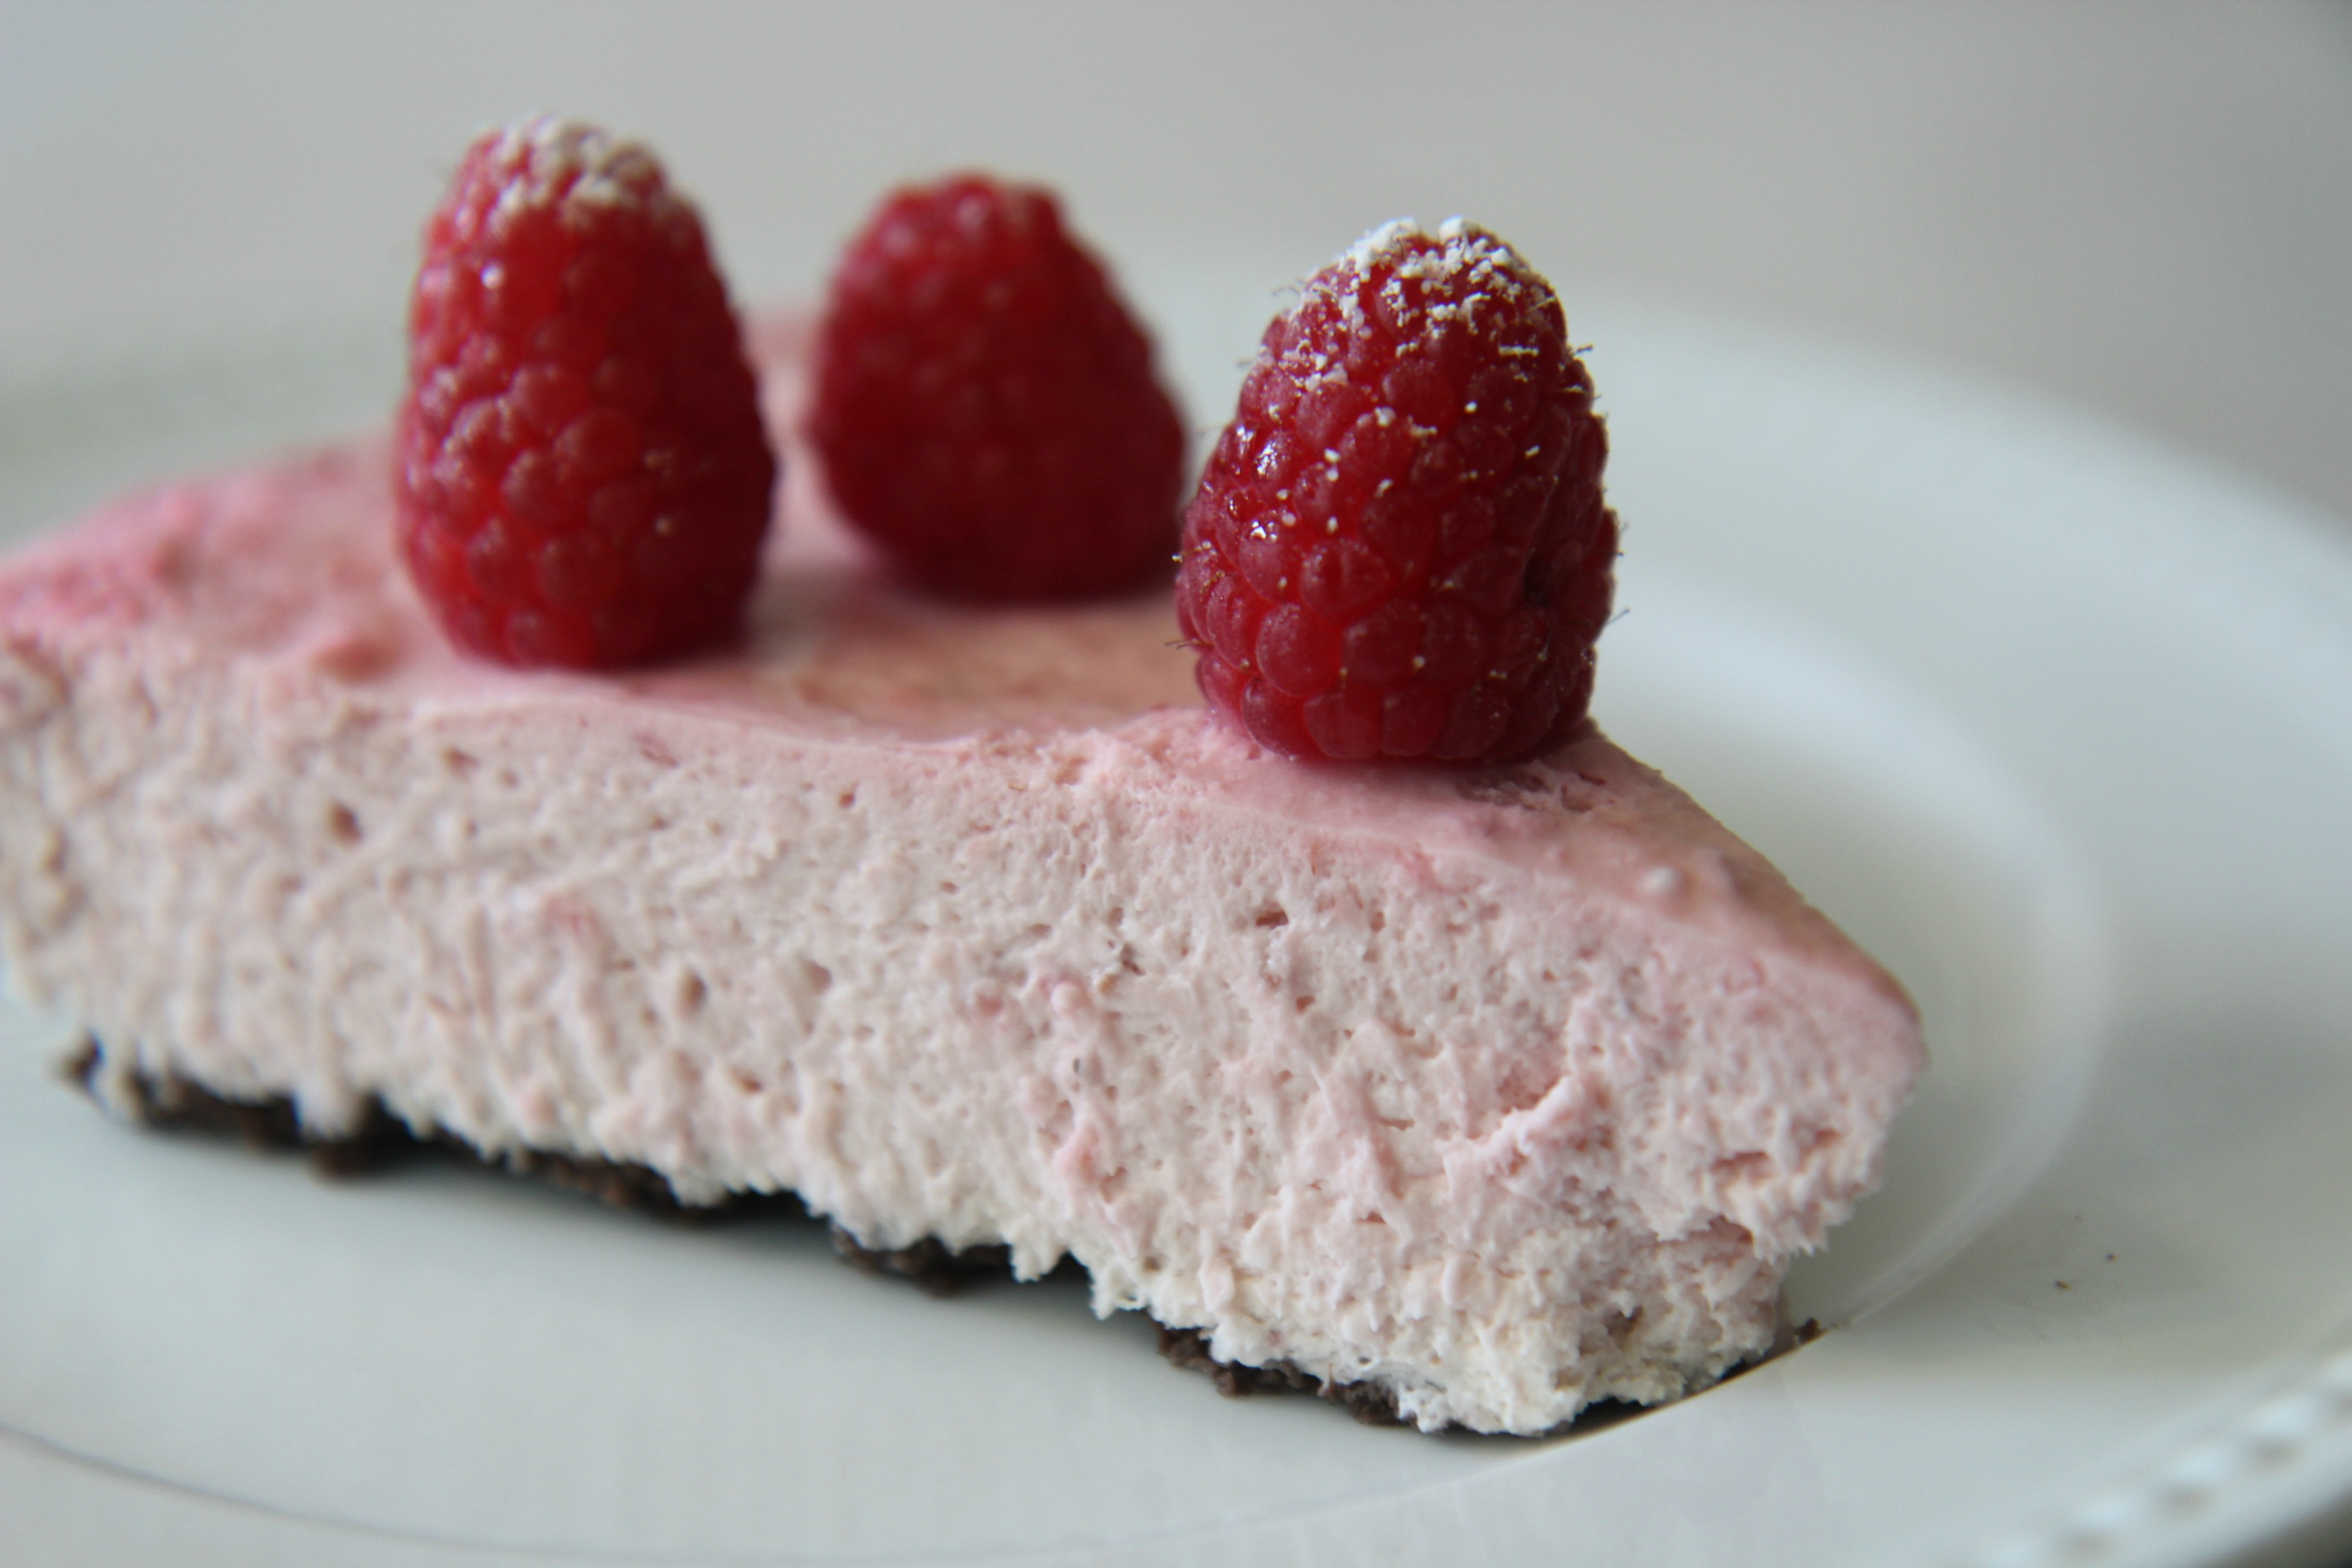 No Bake White Chocolate Raspberry Tart | Cooked by Julie